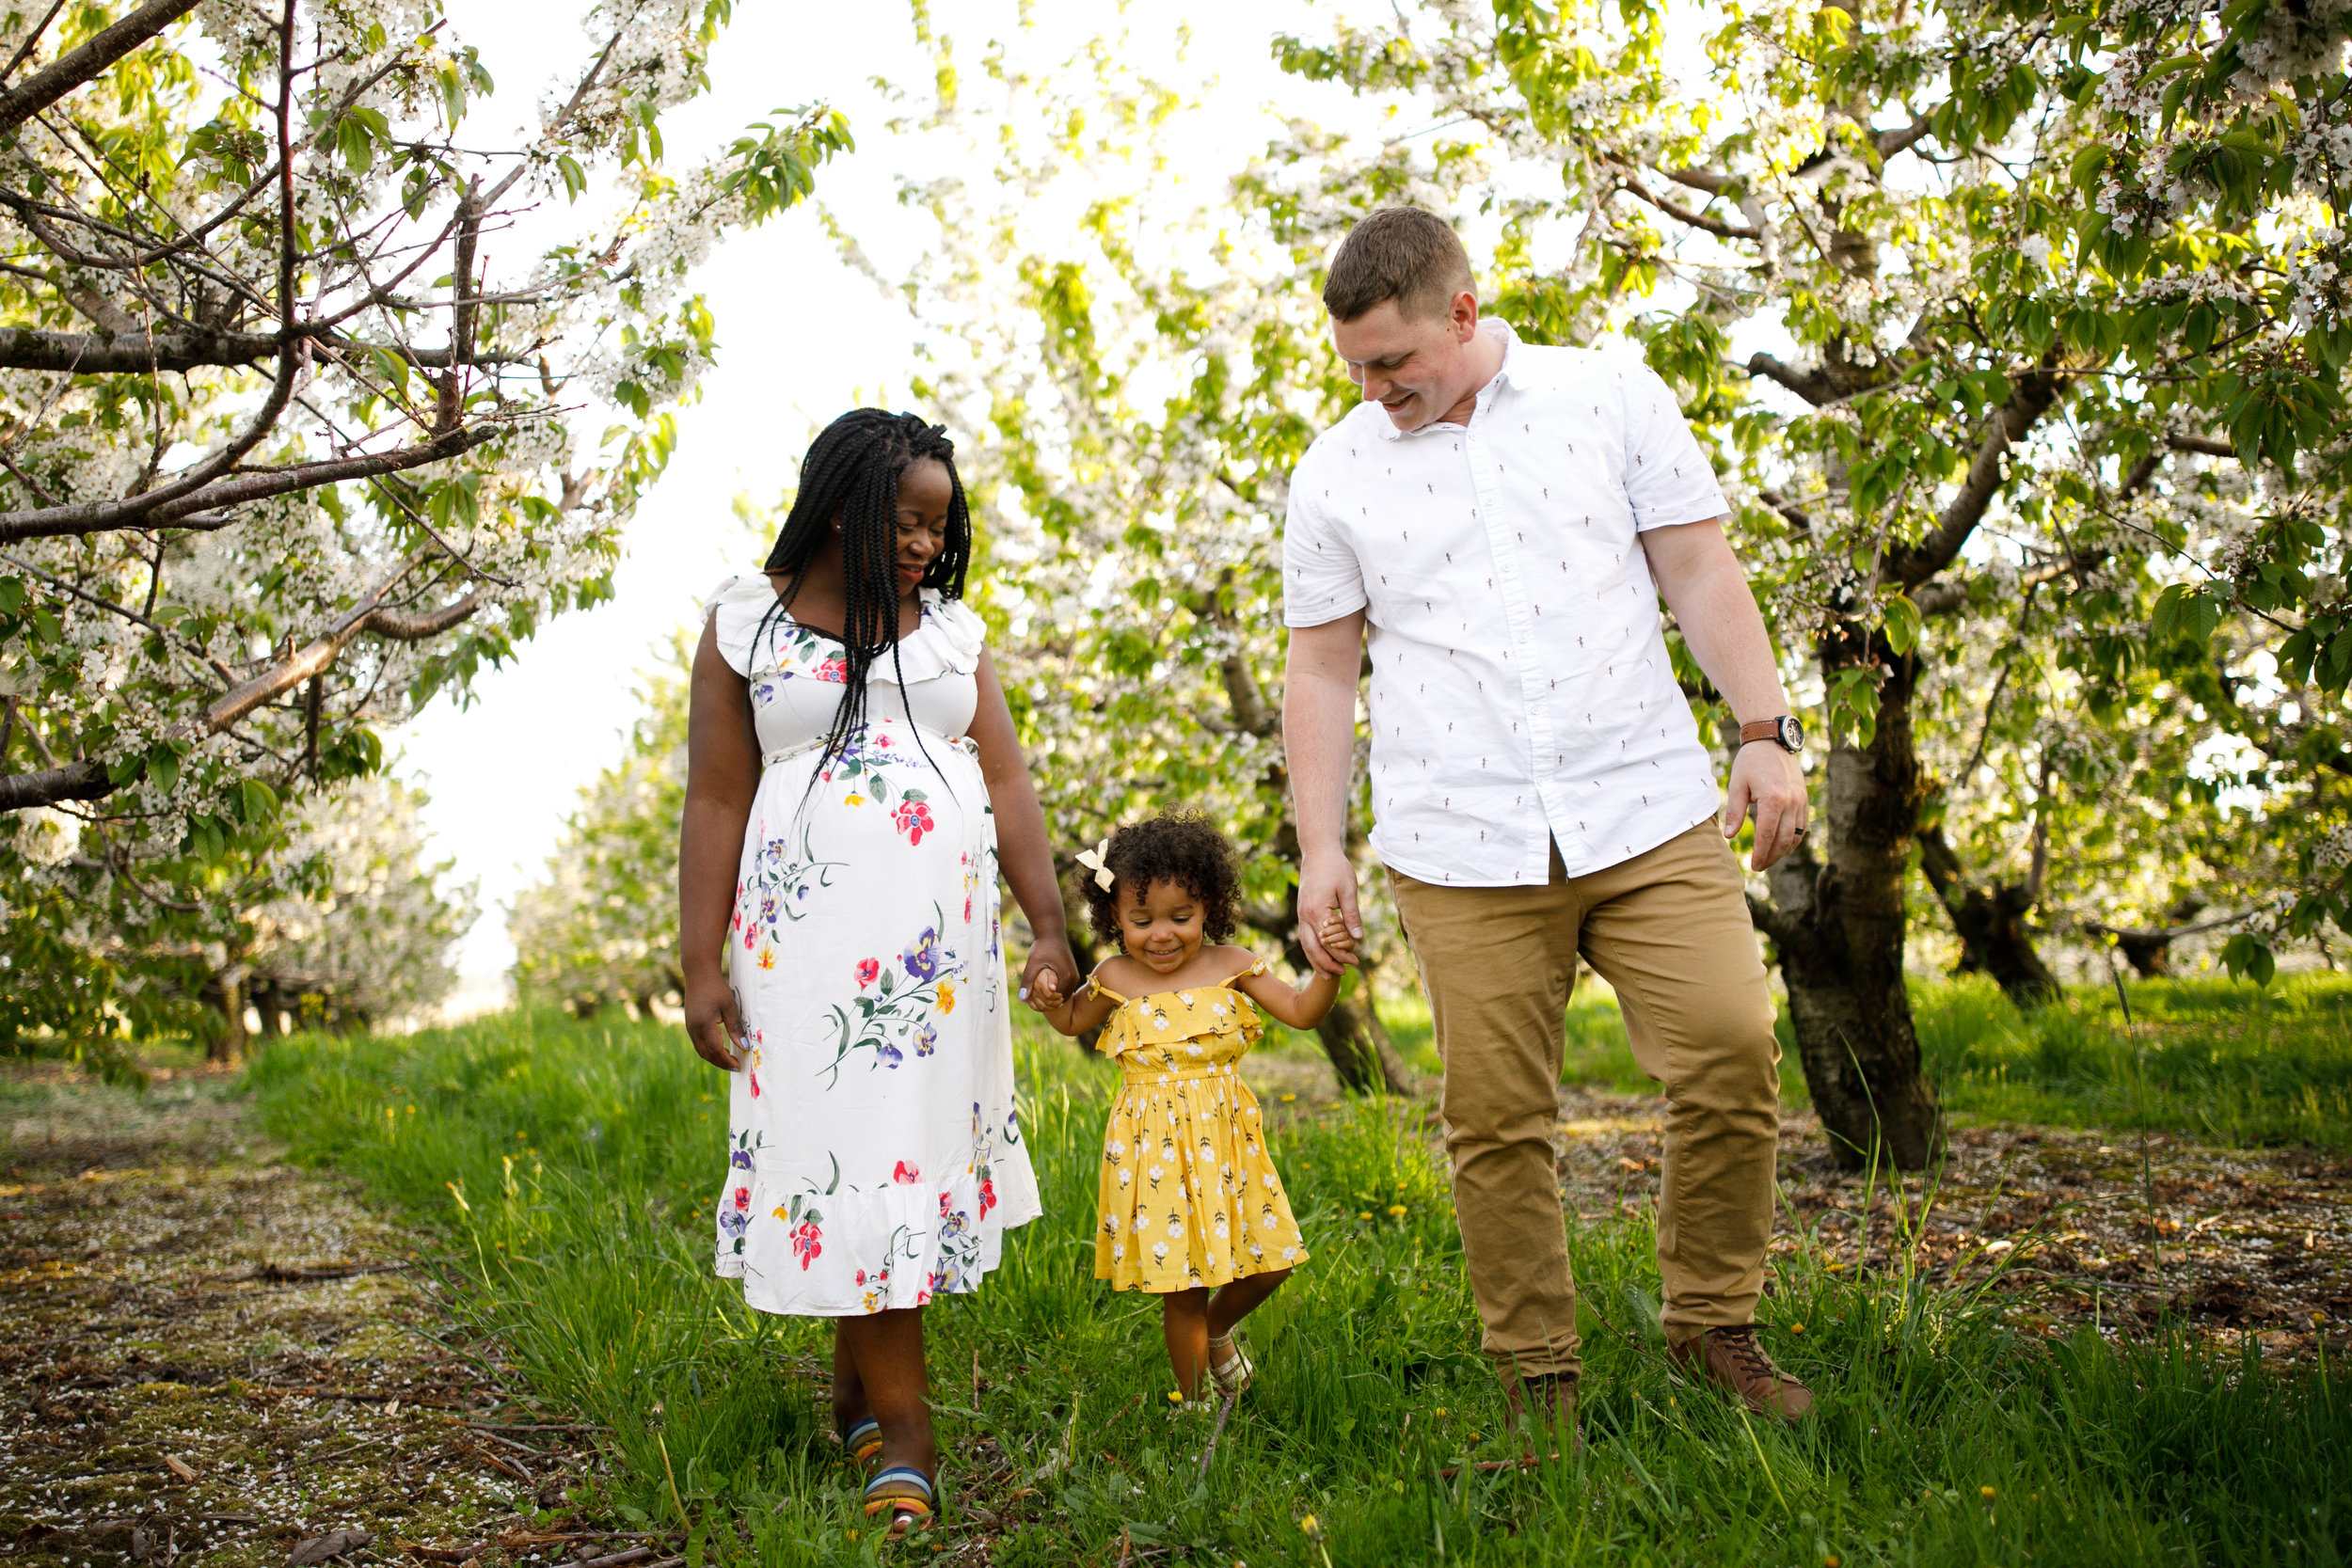 Grand Rapids family photographer - j darling photo - jessica darling - grand rapids photographer - family session - apple blossoms - sparta - michigan photographer037.jpg